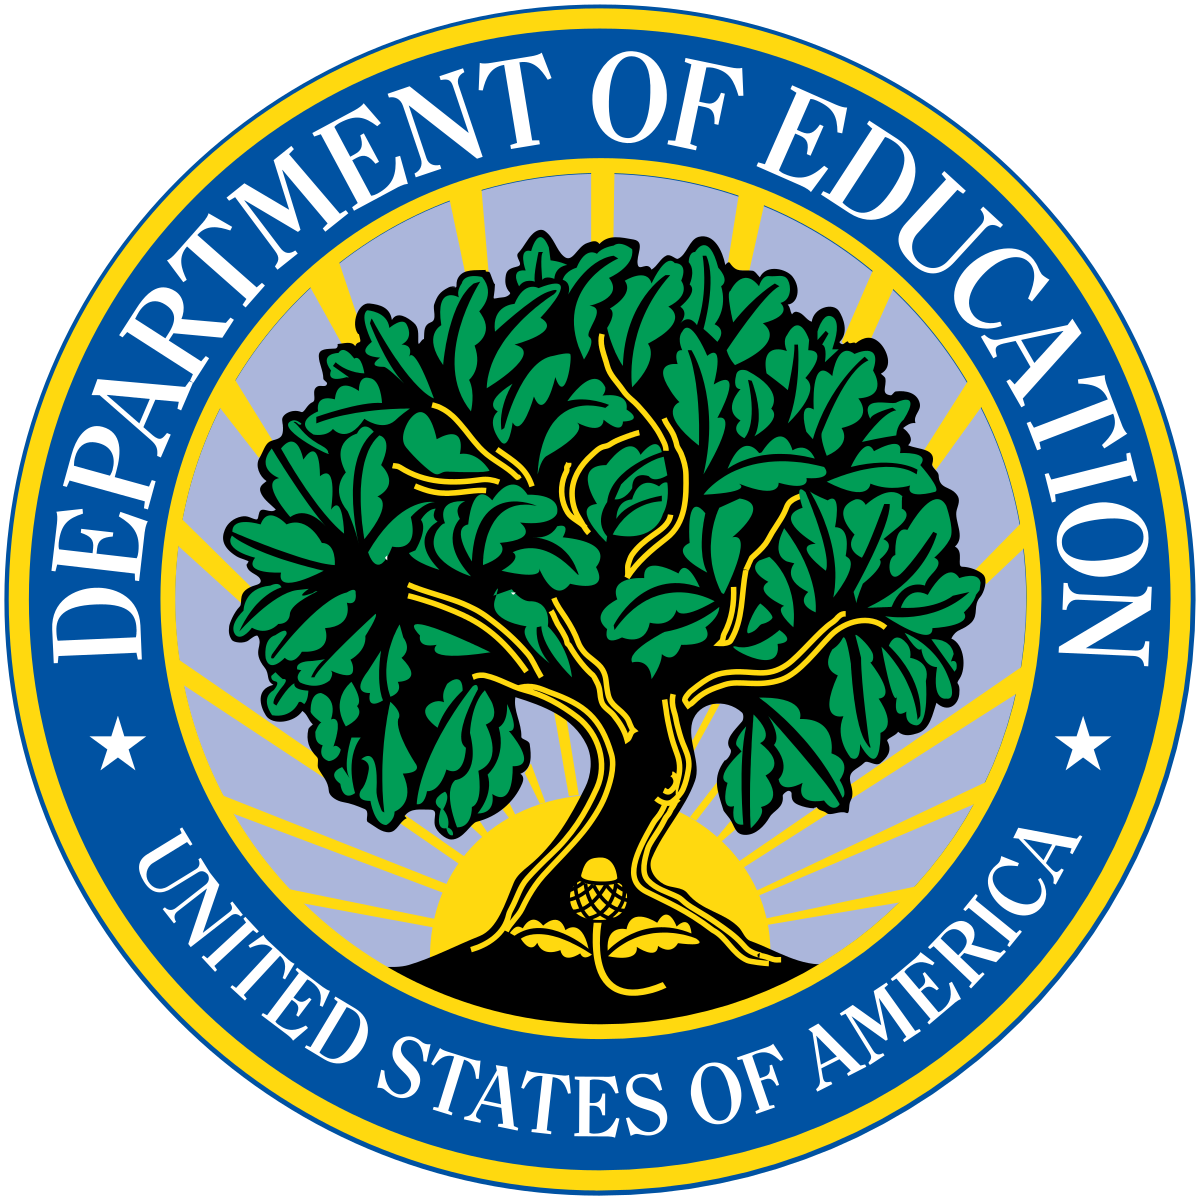 U.S. Department of Education Approves Indiana's Plan for Use of American Rescue Plan Funds to Support K-12 Schools and Students, Distributes Remaining $666 Million to State